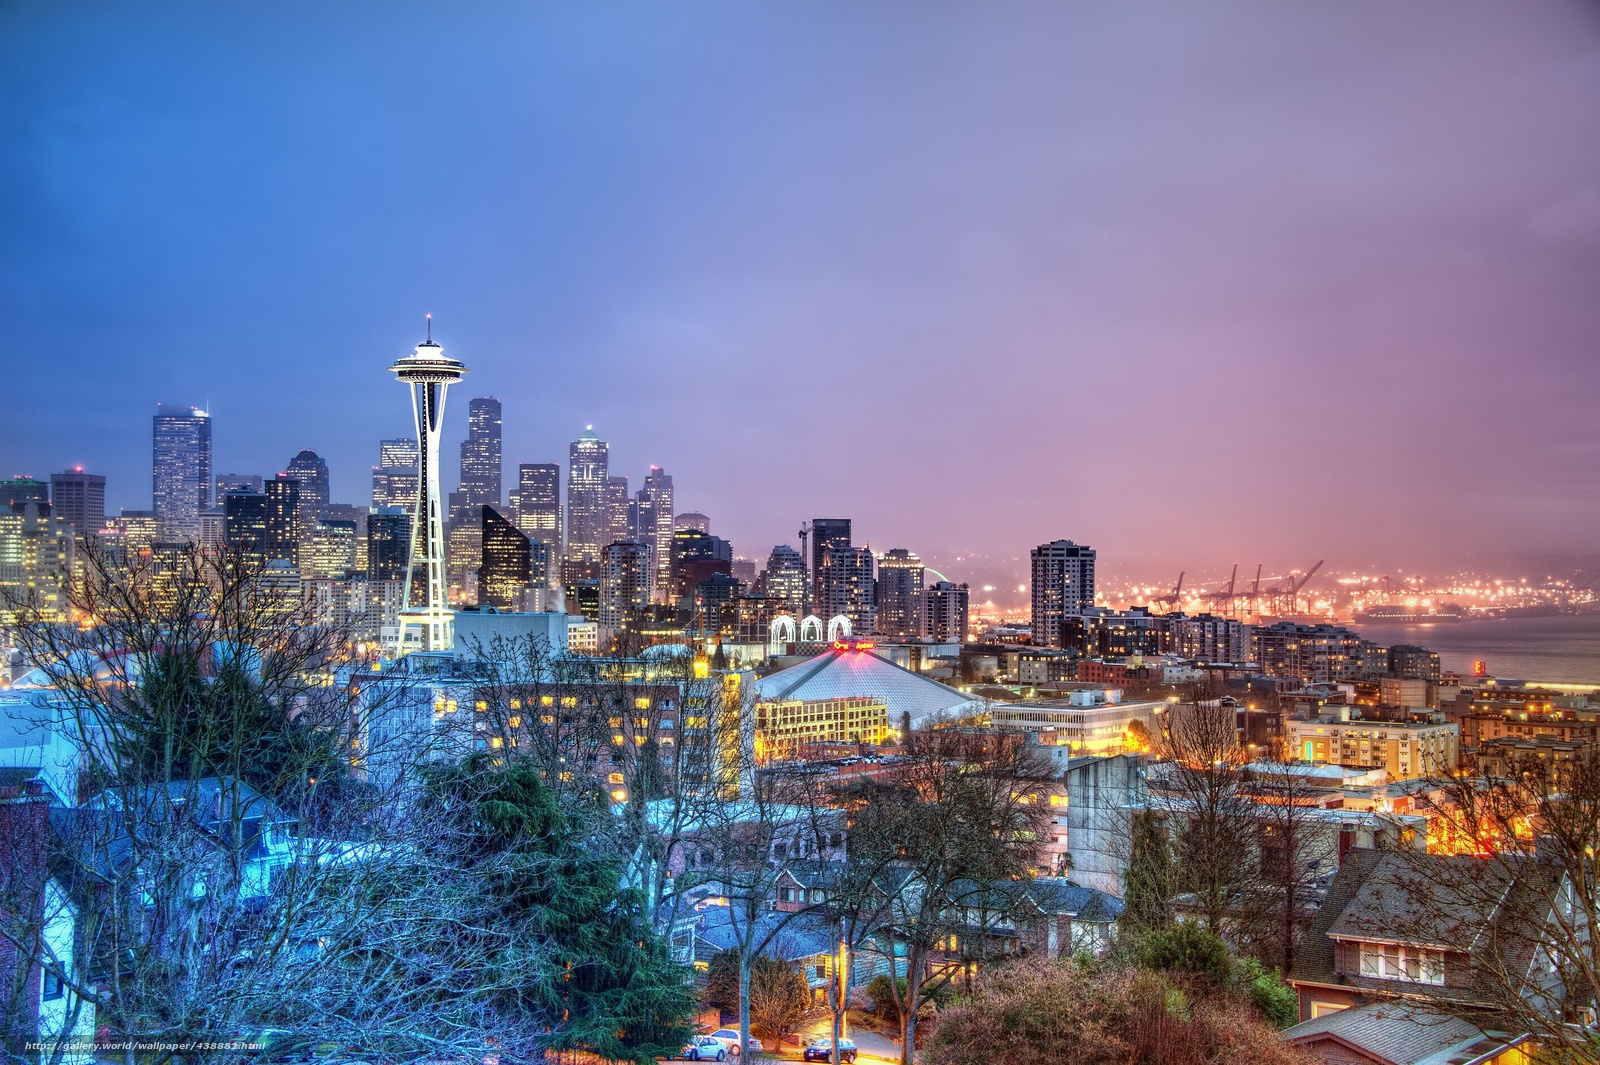 Download wallpaper seattle Seattle night city panorama desktop 1600x1065